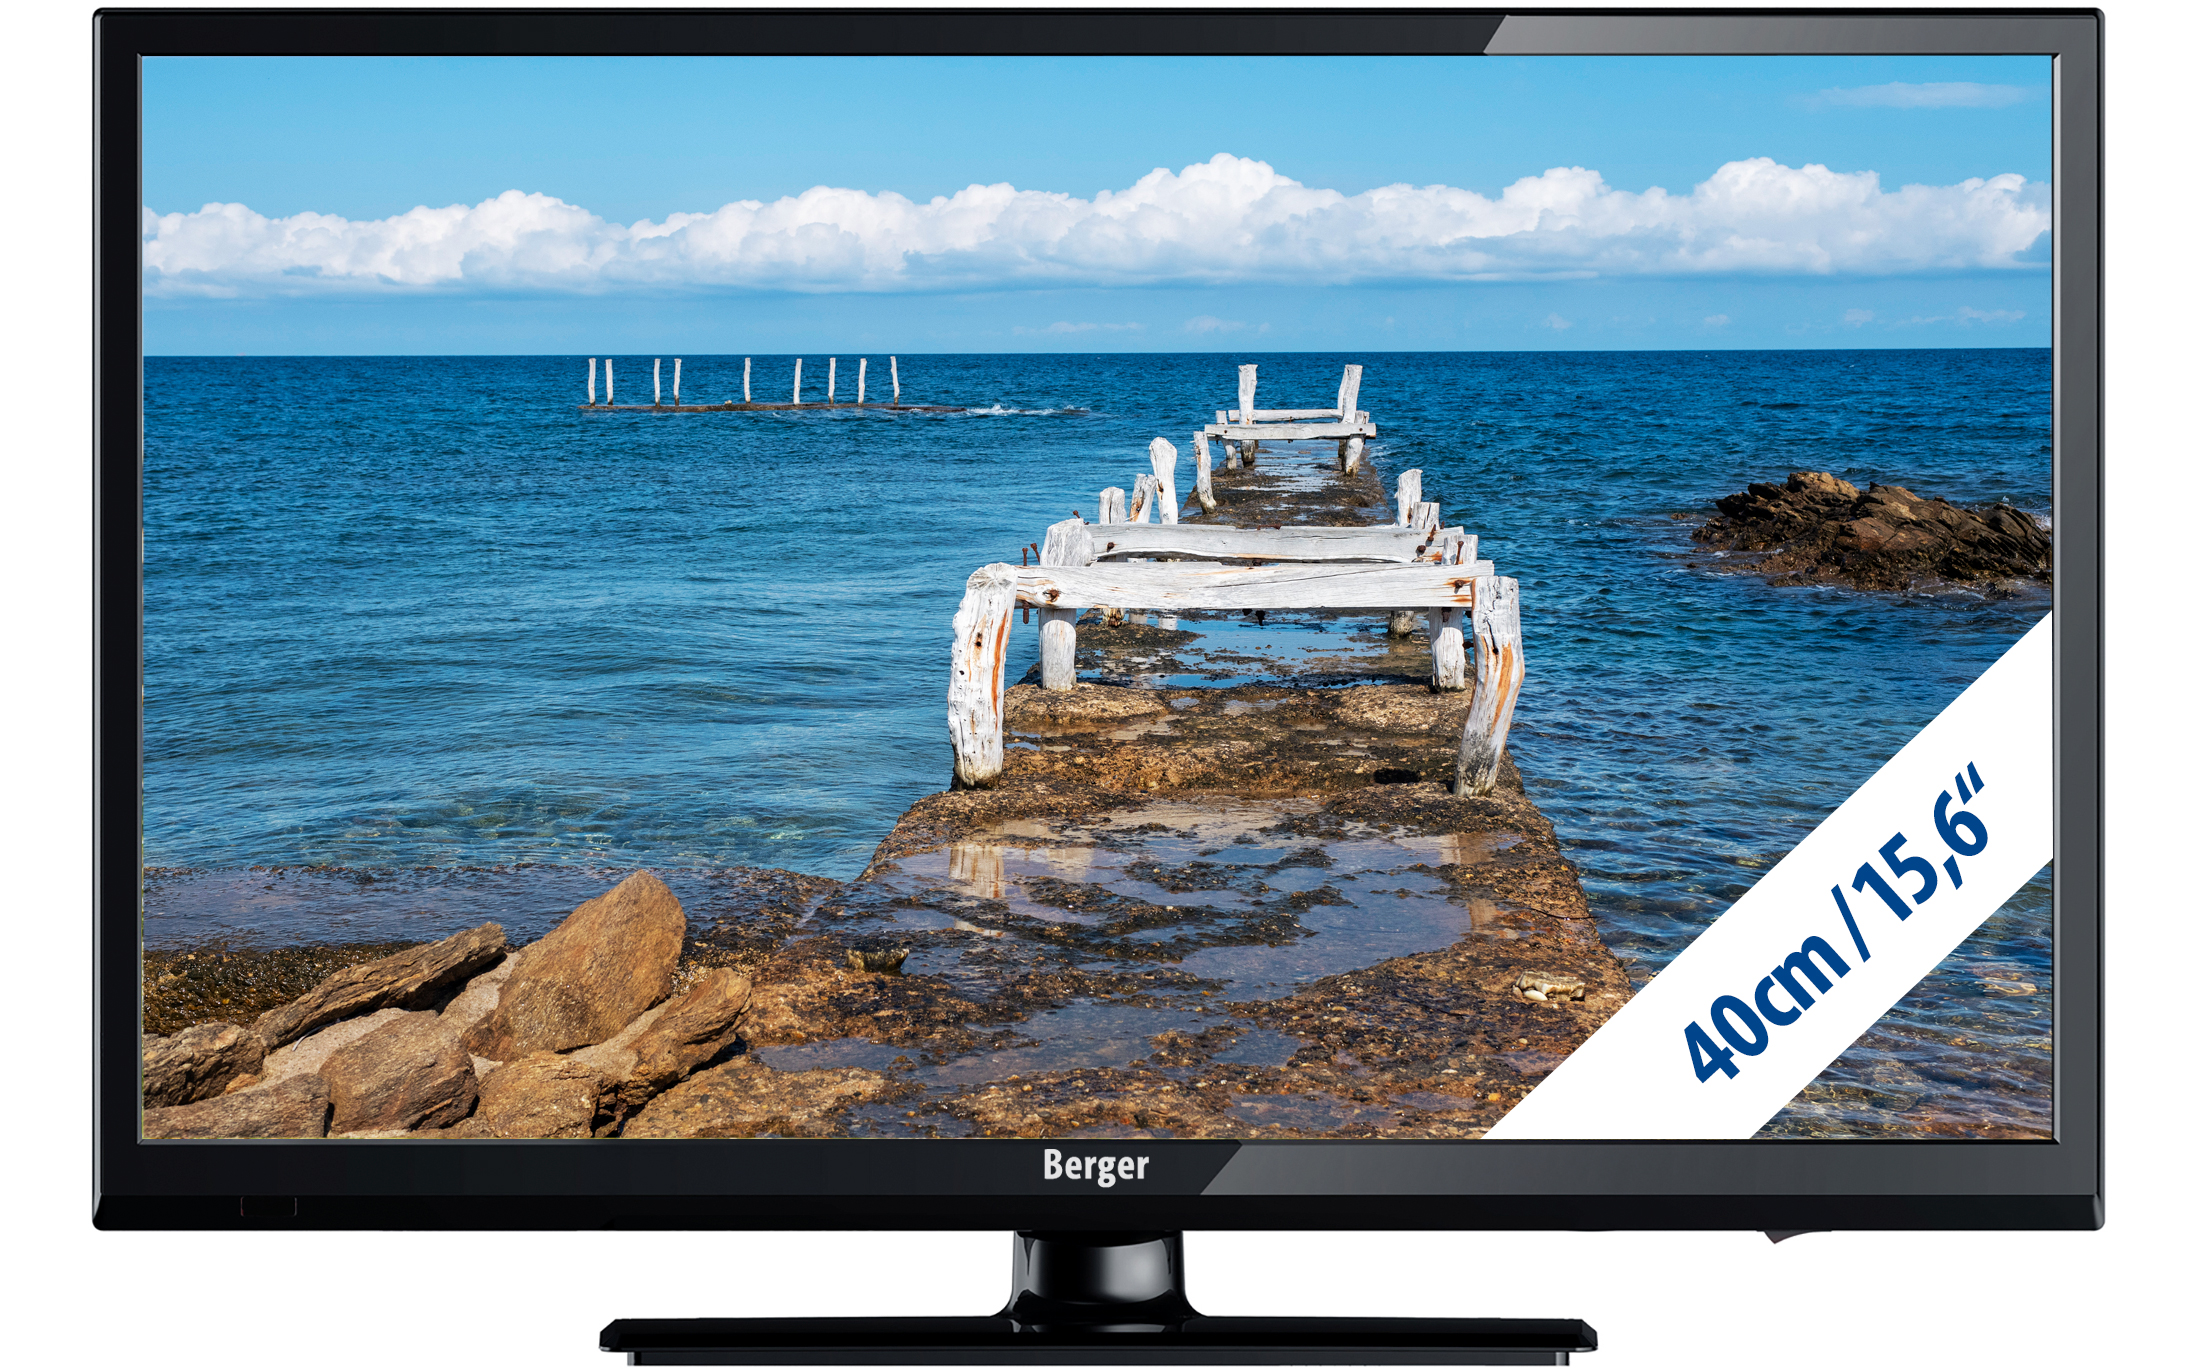 Berger Camping TV LED Fernseher 15,6 Zoll